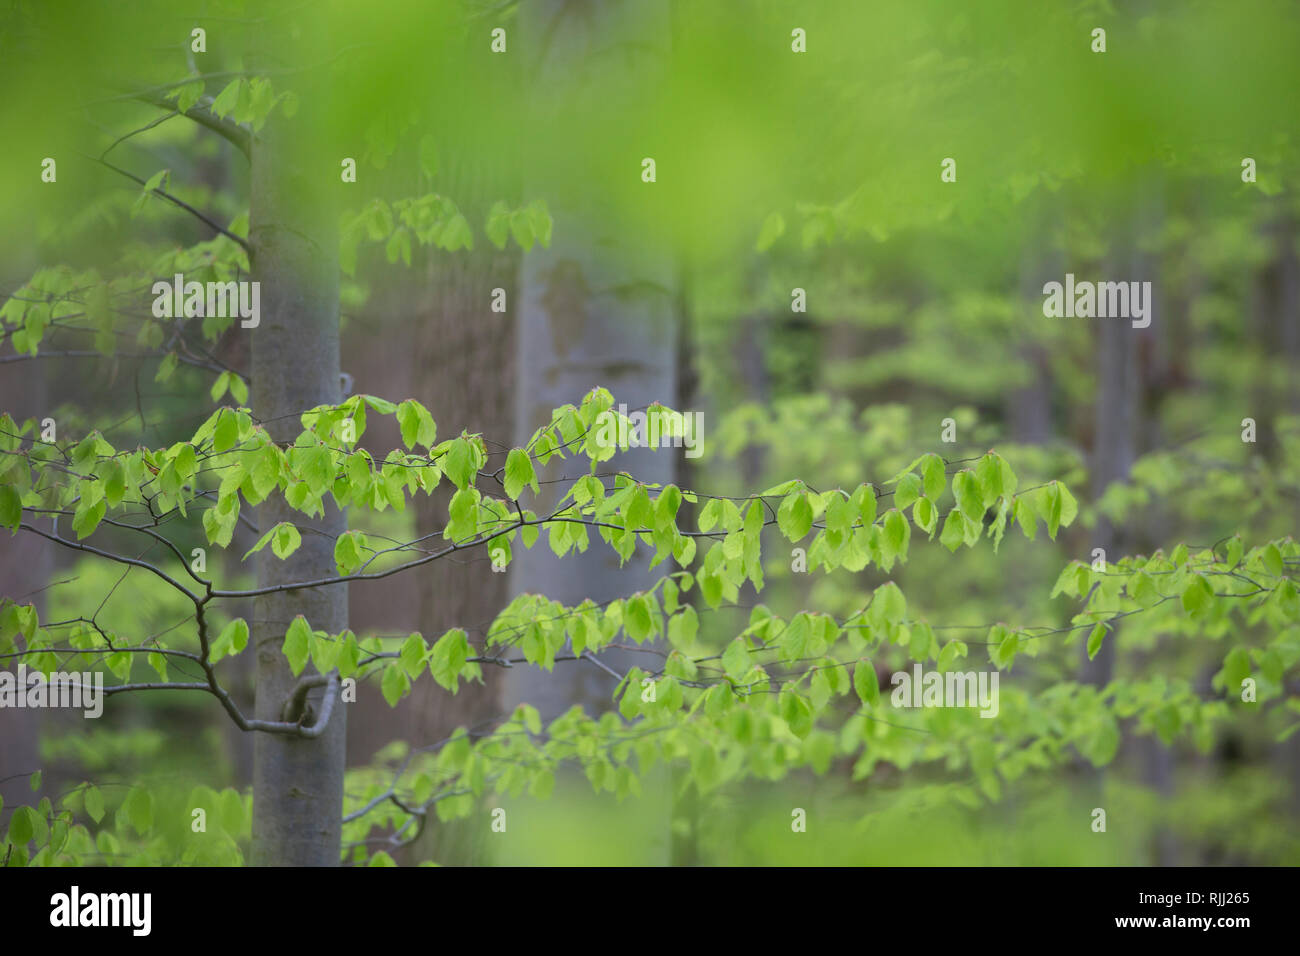 Common Beech (Fagus sylvatica). Beech forest in spring. Schleswig-Holsten, Germany - Stock Image